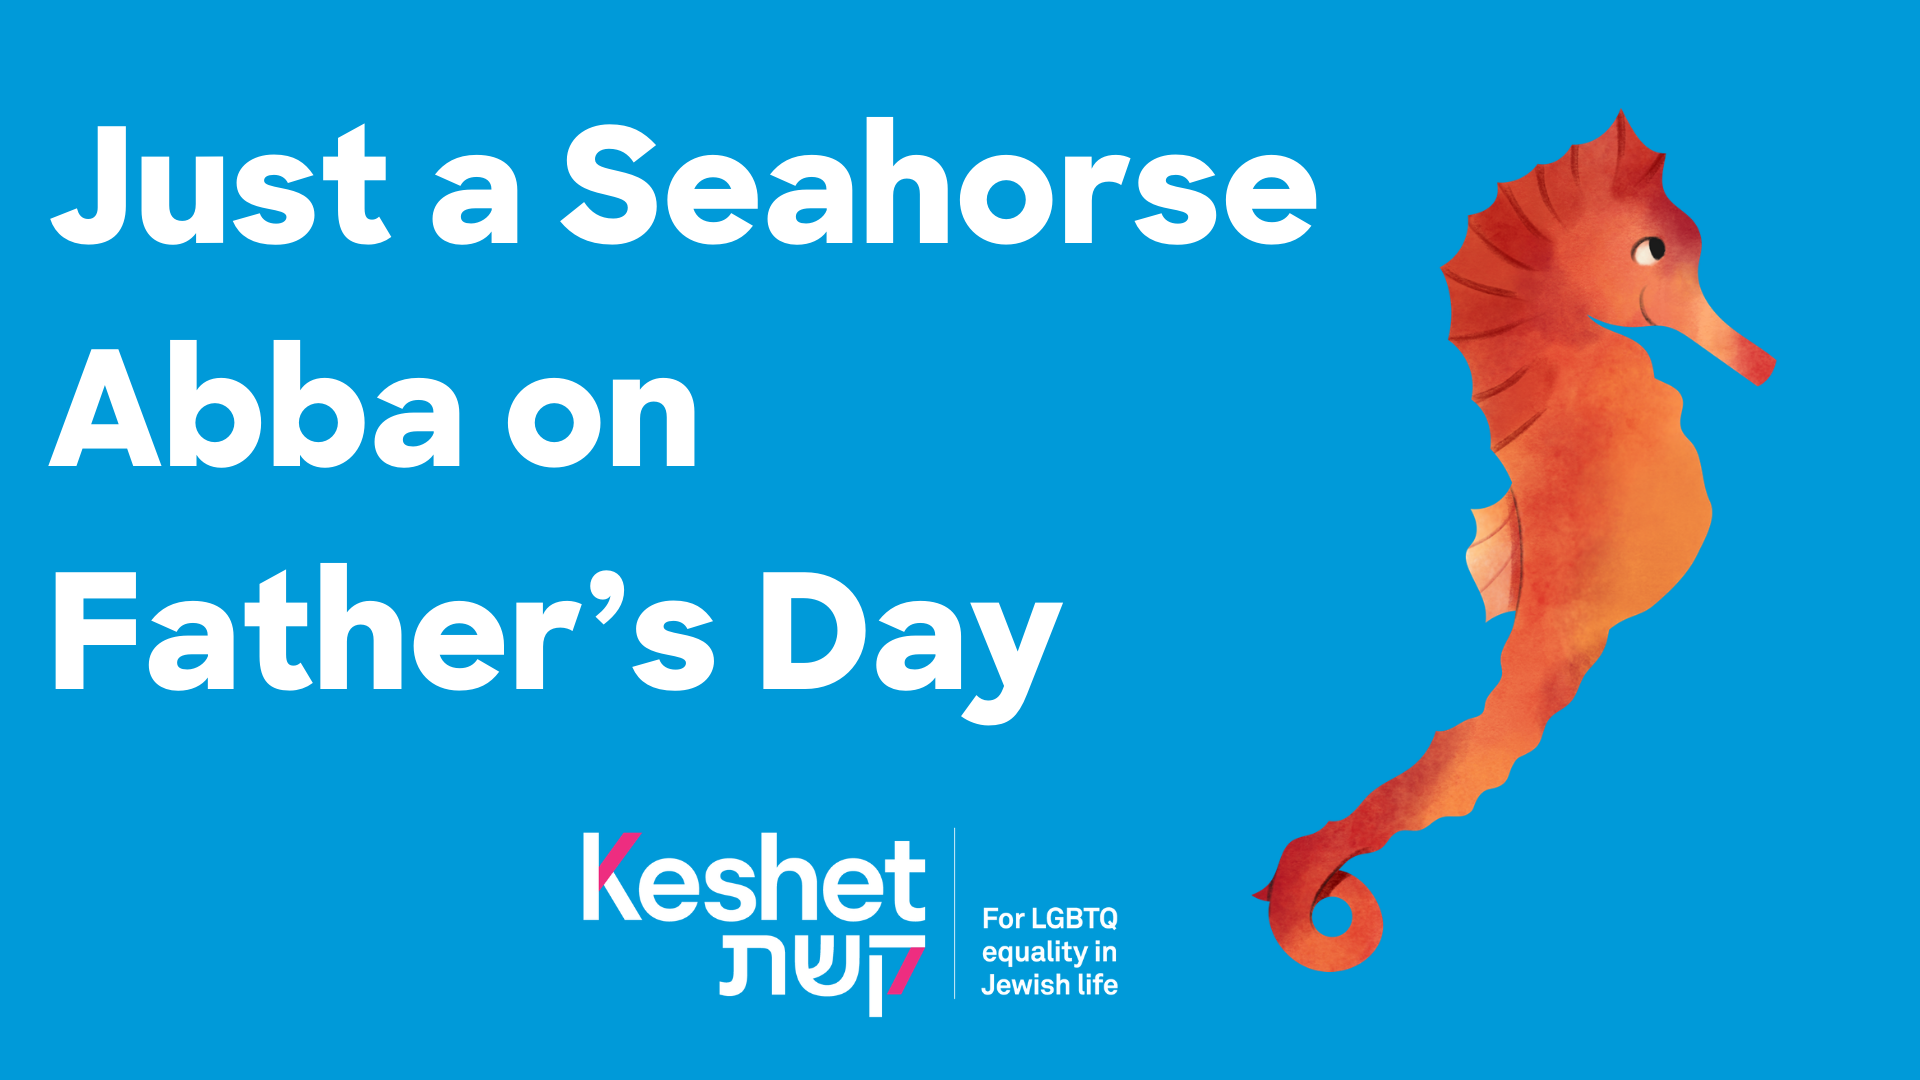 Just a Seahorse Abba on Father's Day